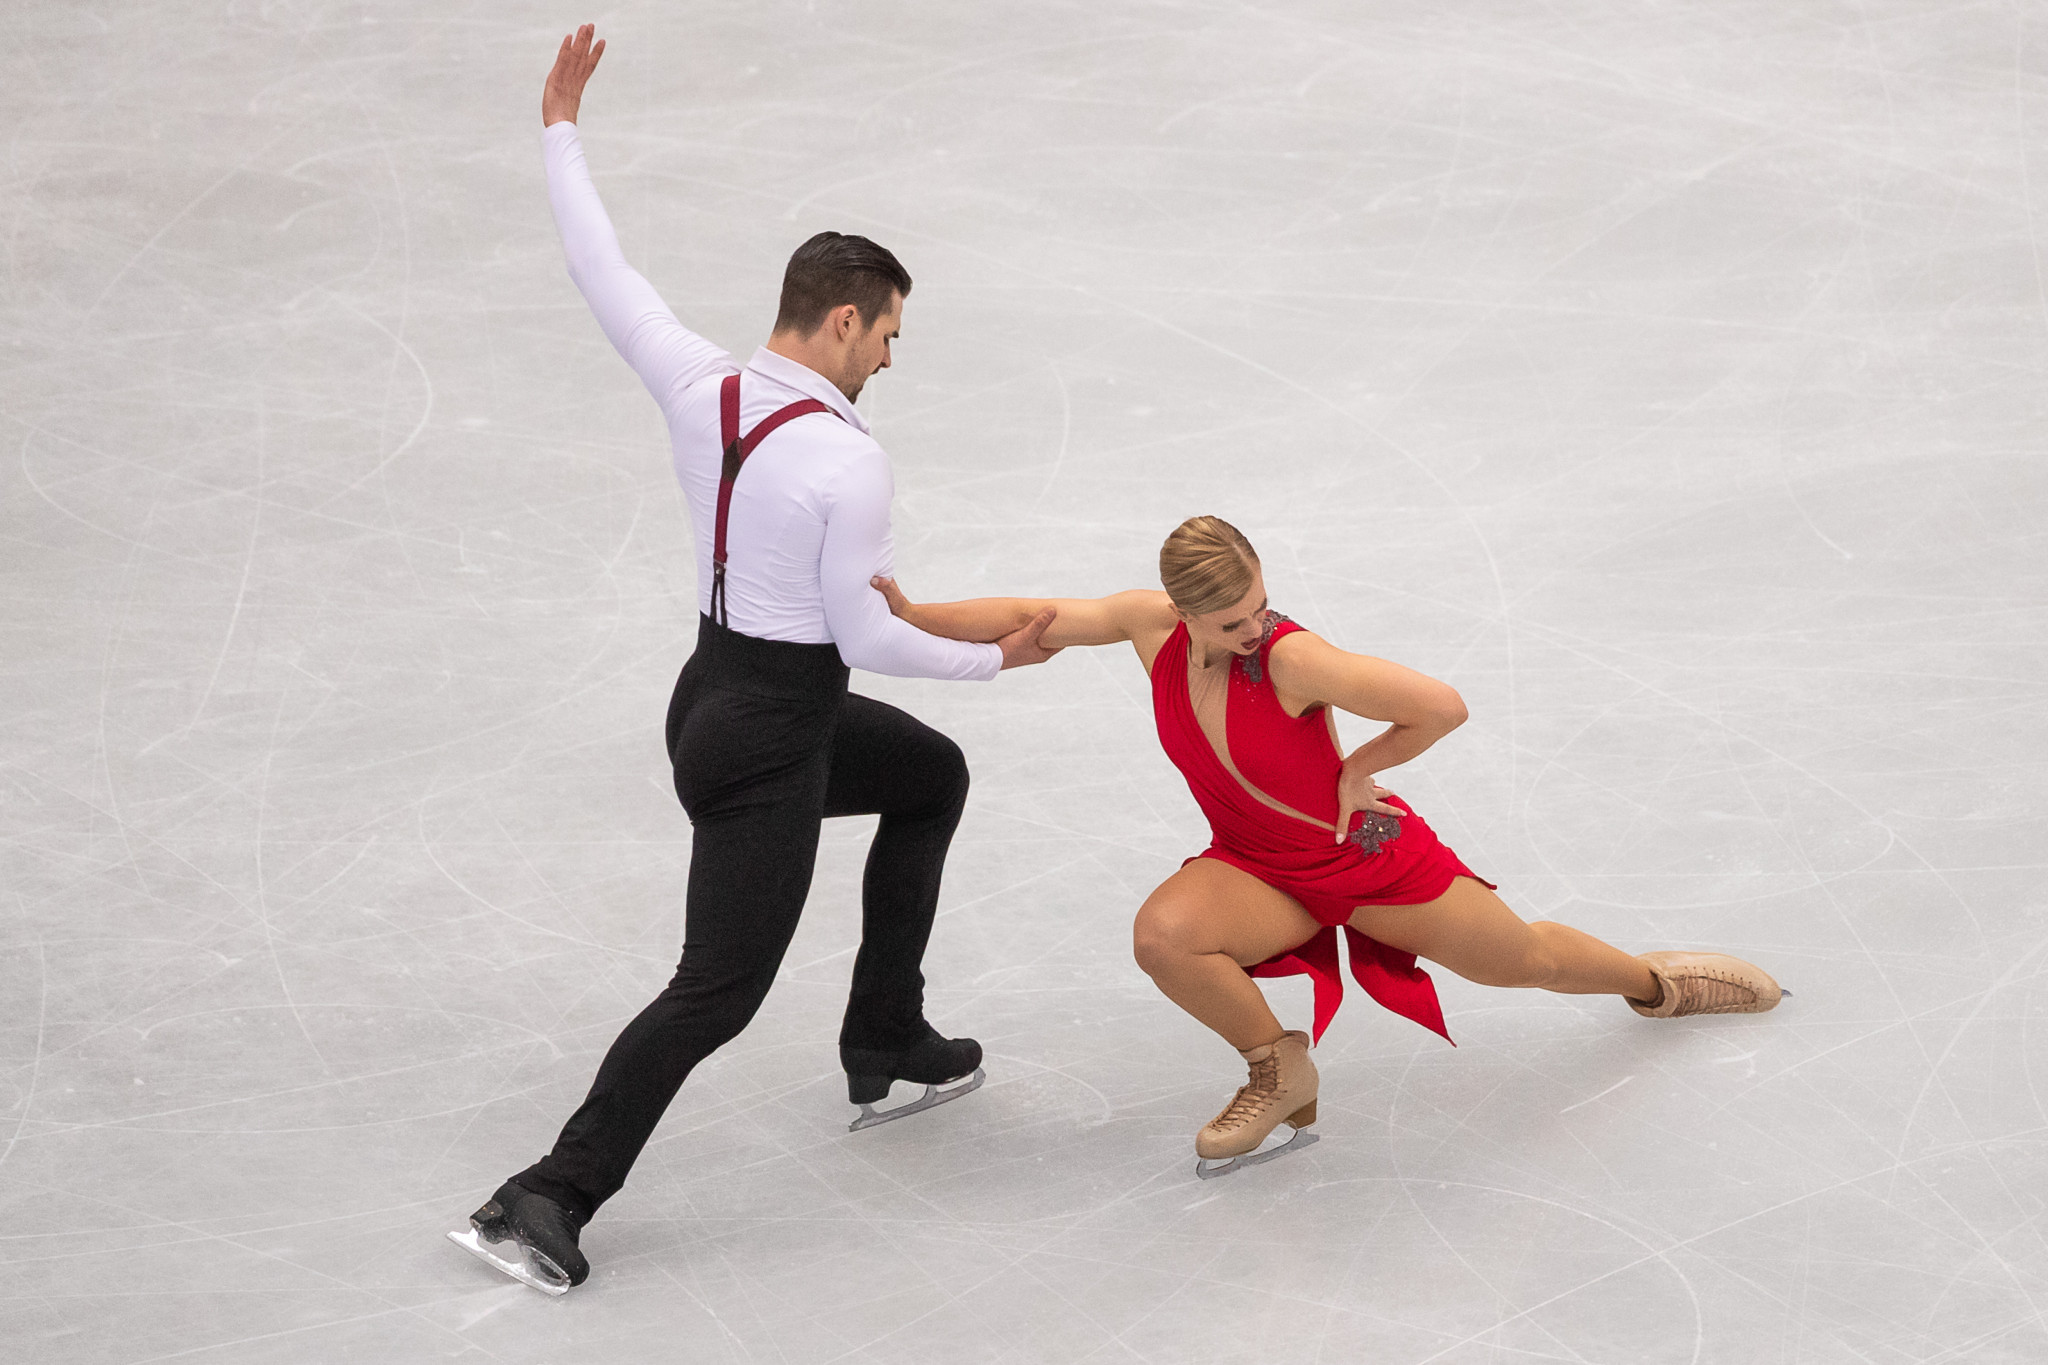 Madison Hubbell and Zachary Donohue will be another draw for home American fans ©Getty Images